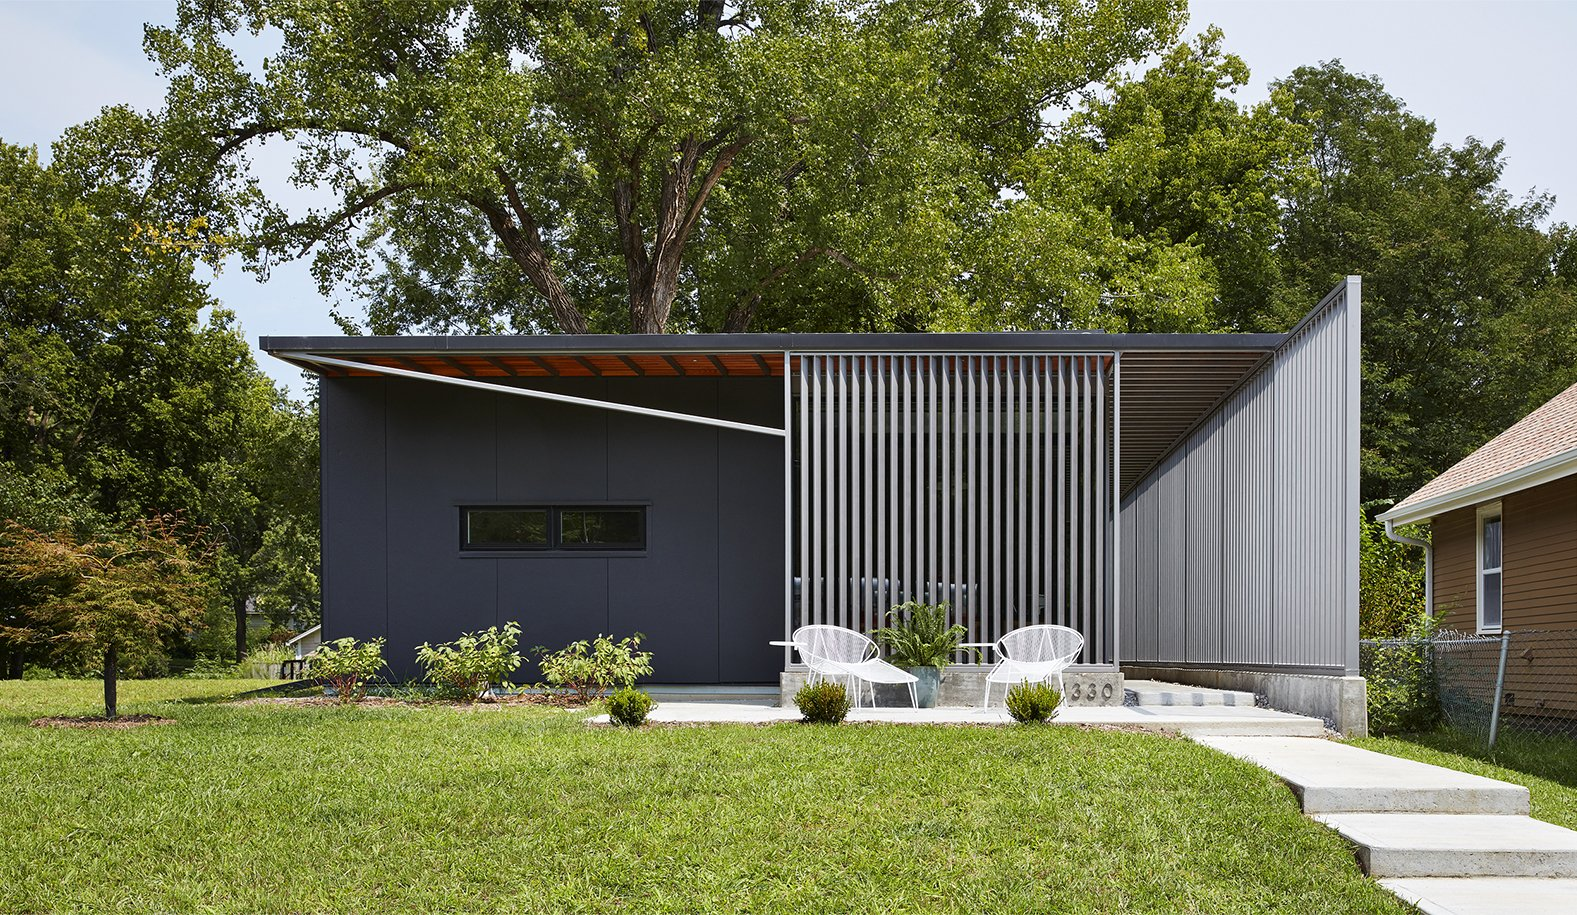 Using insulted metal panels that were rejected from the construction of a tennis center nearby, this sustainable home in Kansas by Studio 804 was inspired by the prefab Lustron houses that were developed in the United States after World War II.